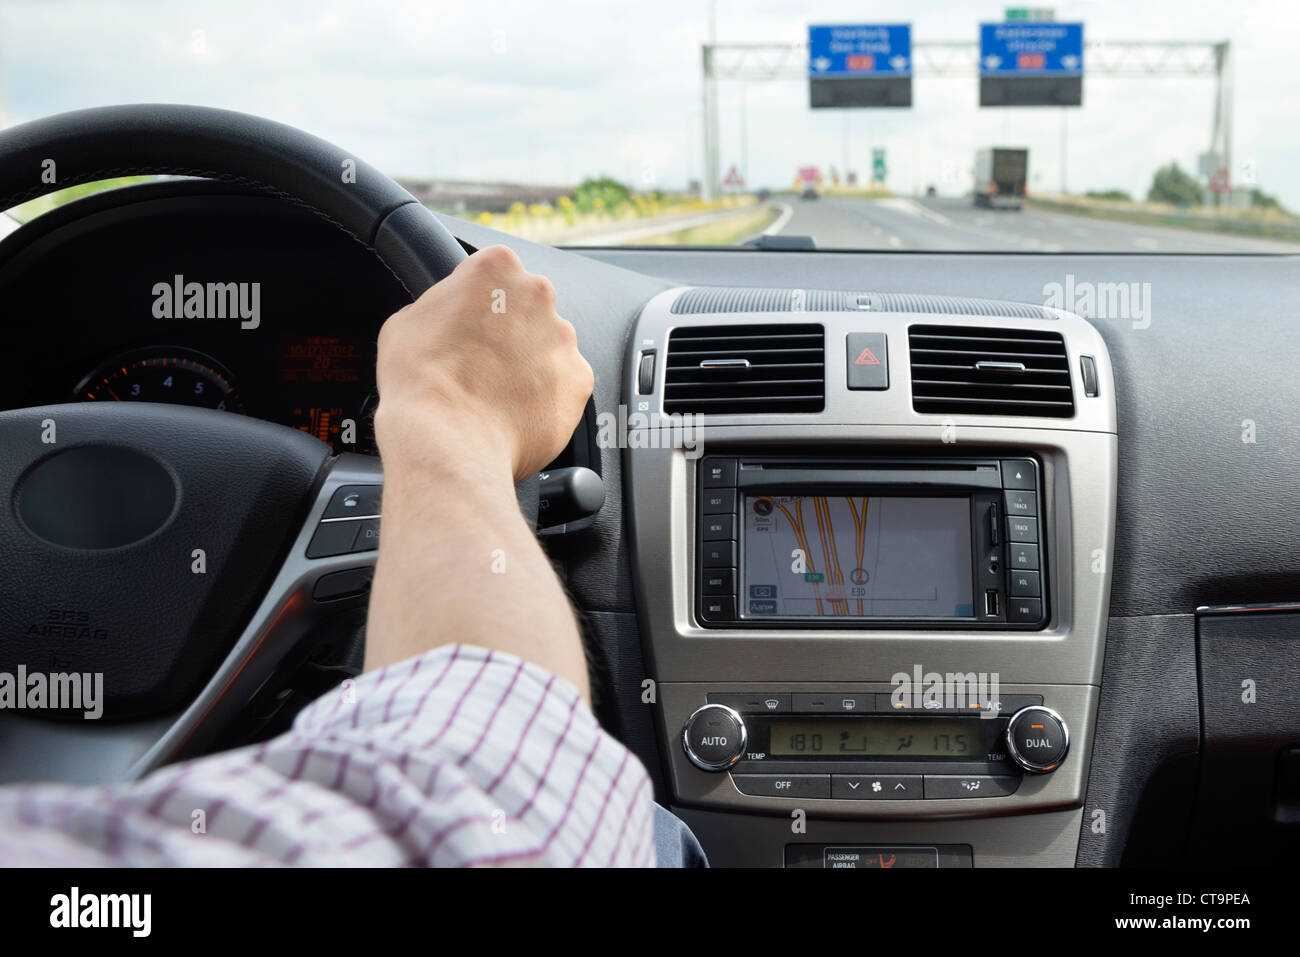 Hand on the steering wheel of a modern, luxurious car, taking an exit on a motorway - Stock Image